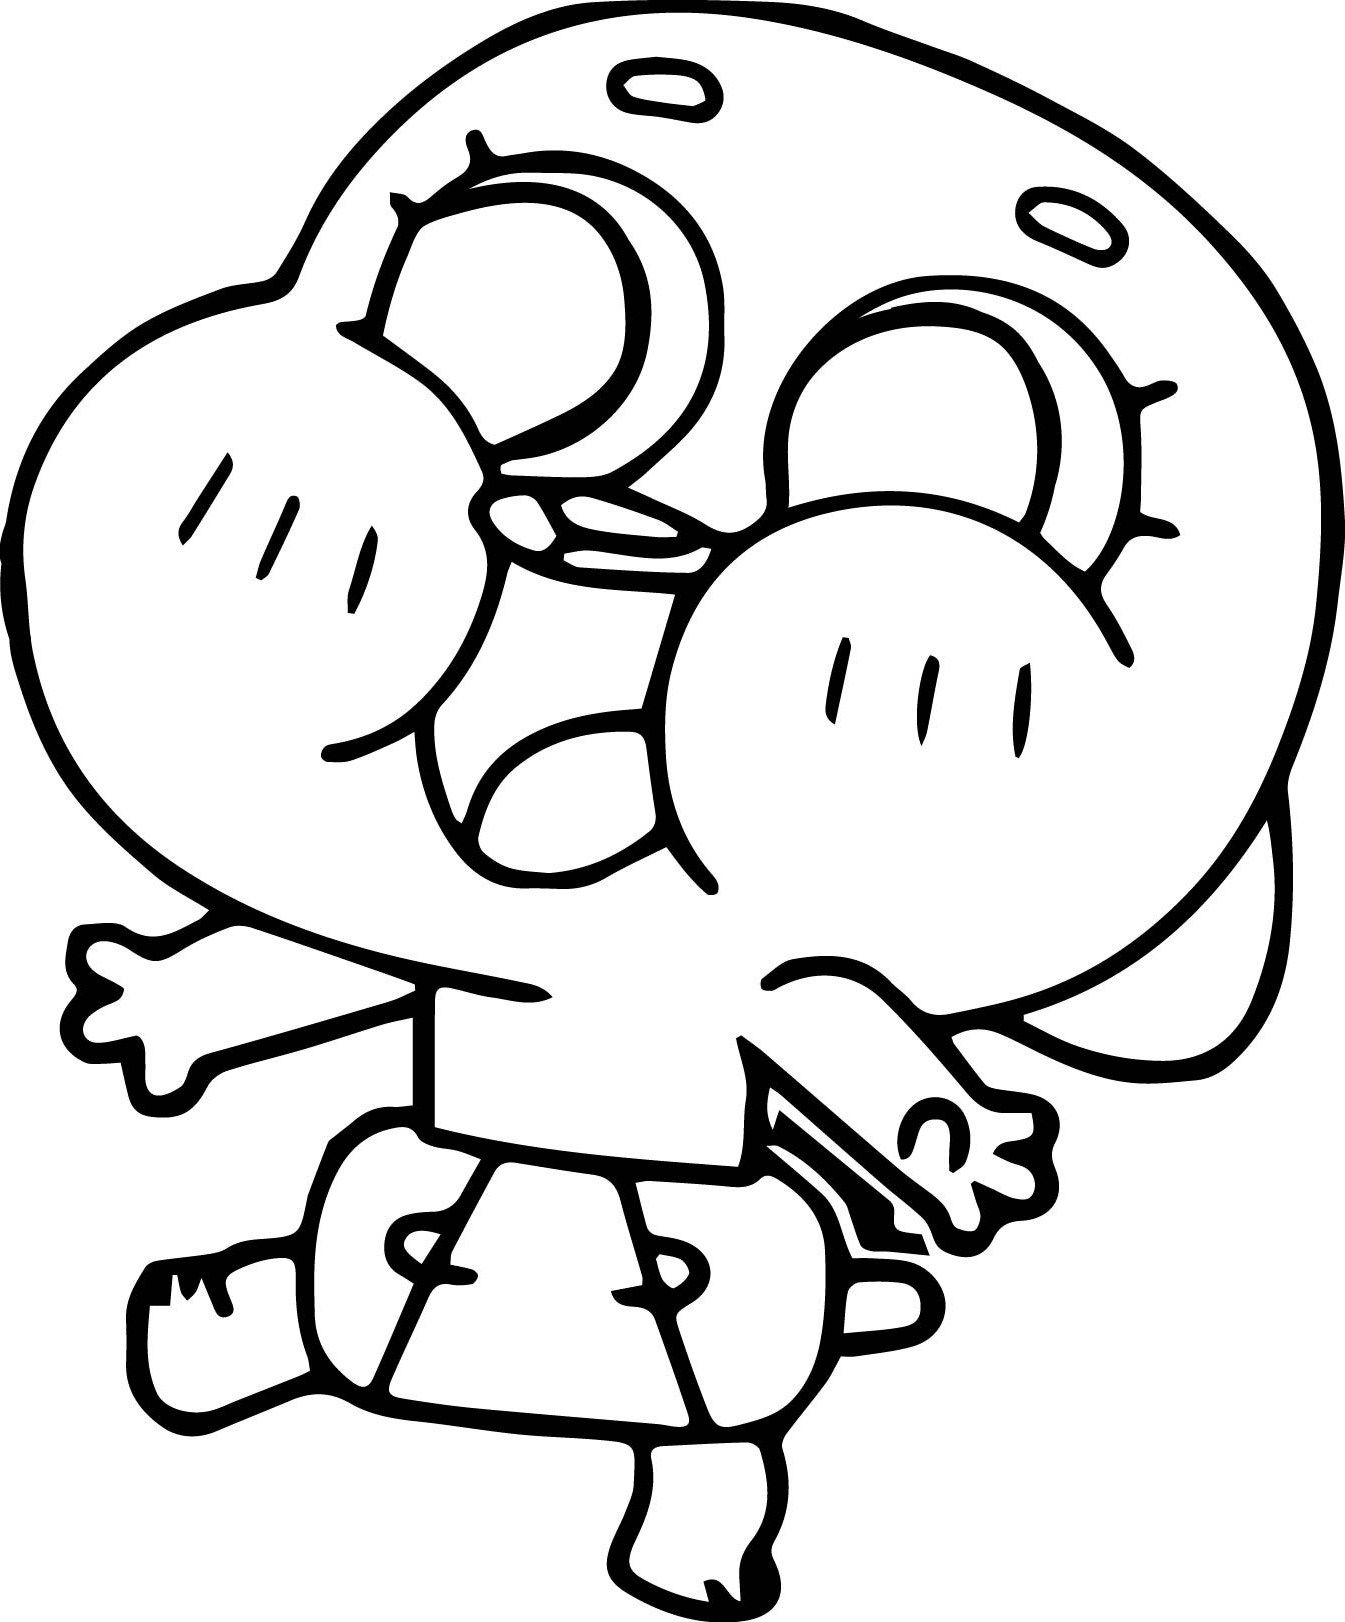 Awesome Picture Of Gumball Coloring Pages Davemelillo Com Coloring Pages Cool Coloring Pages Gumball